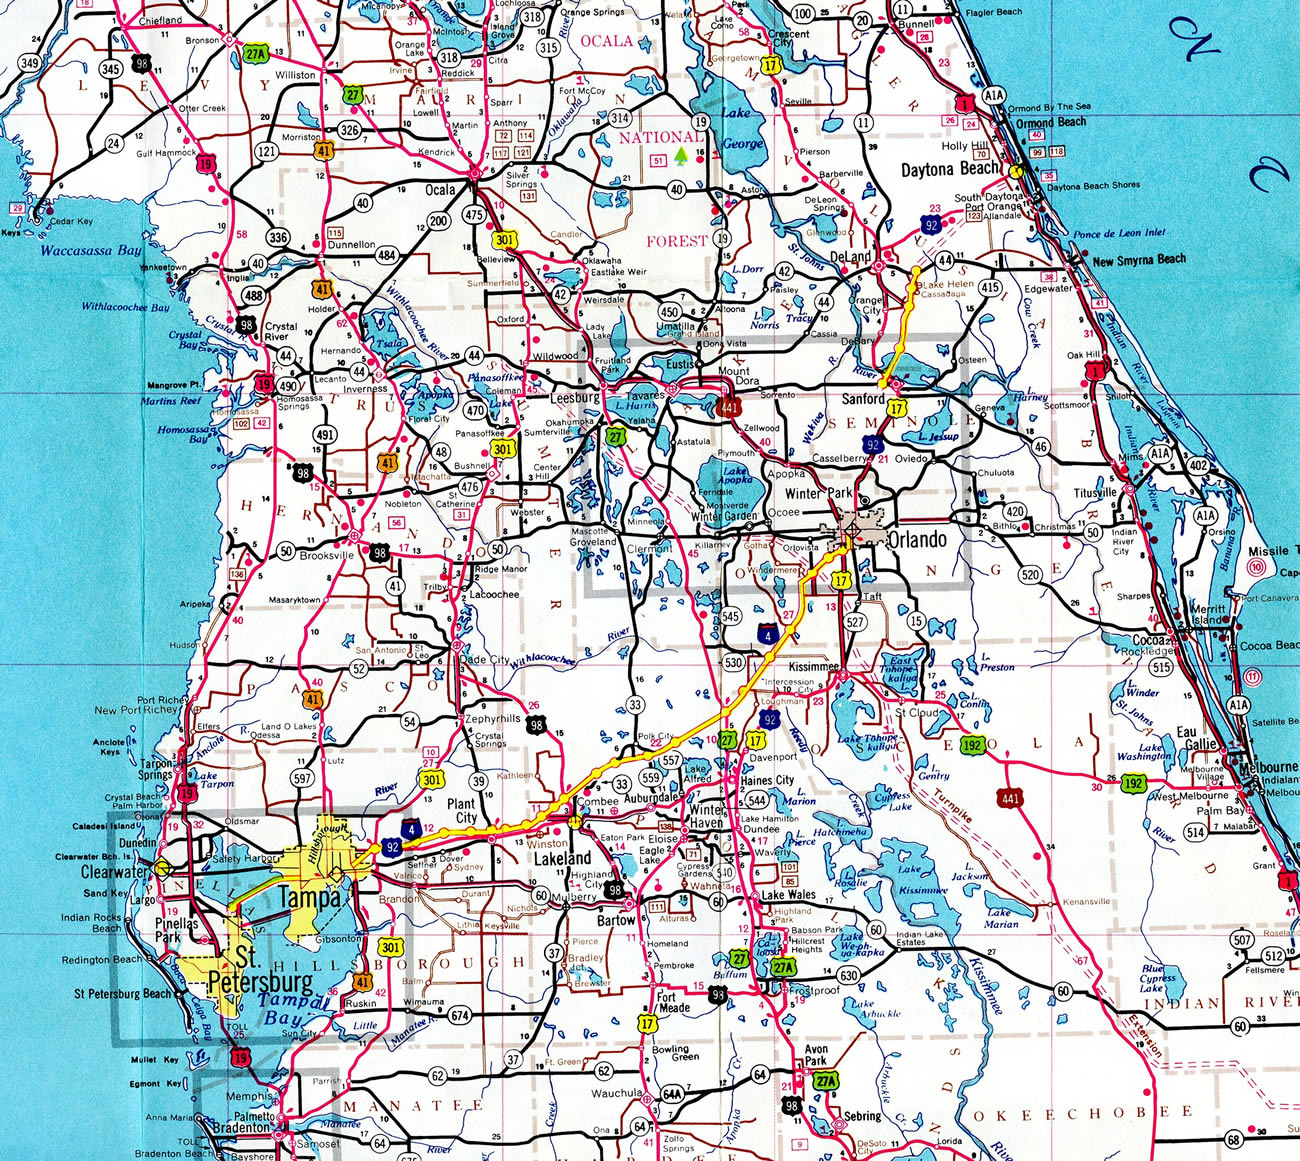 City Map Of Central Florida - Link-Italia - Road Map Of Central Florida